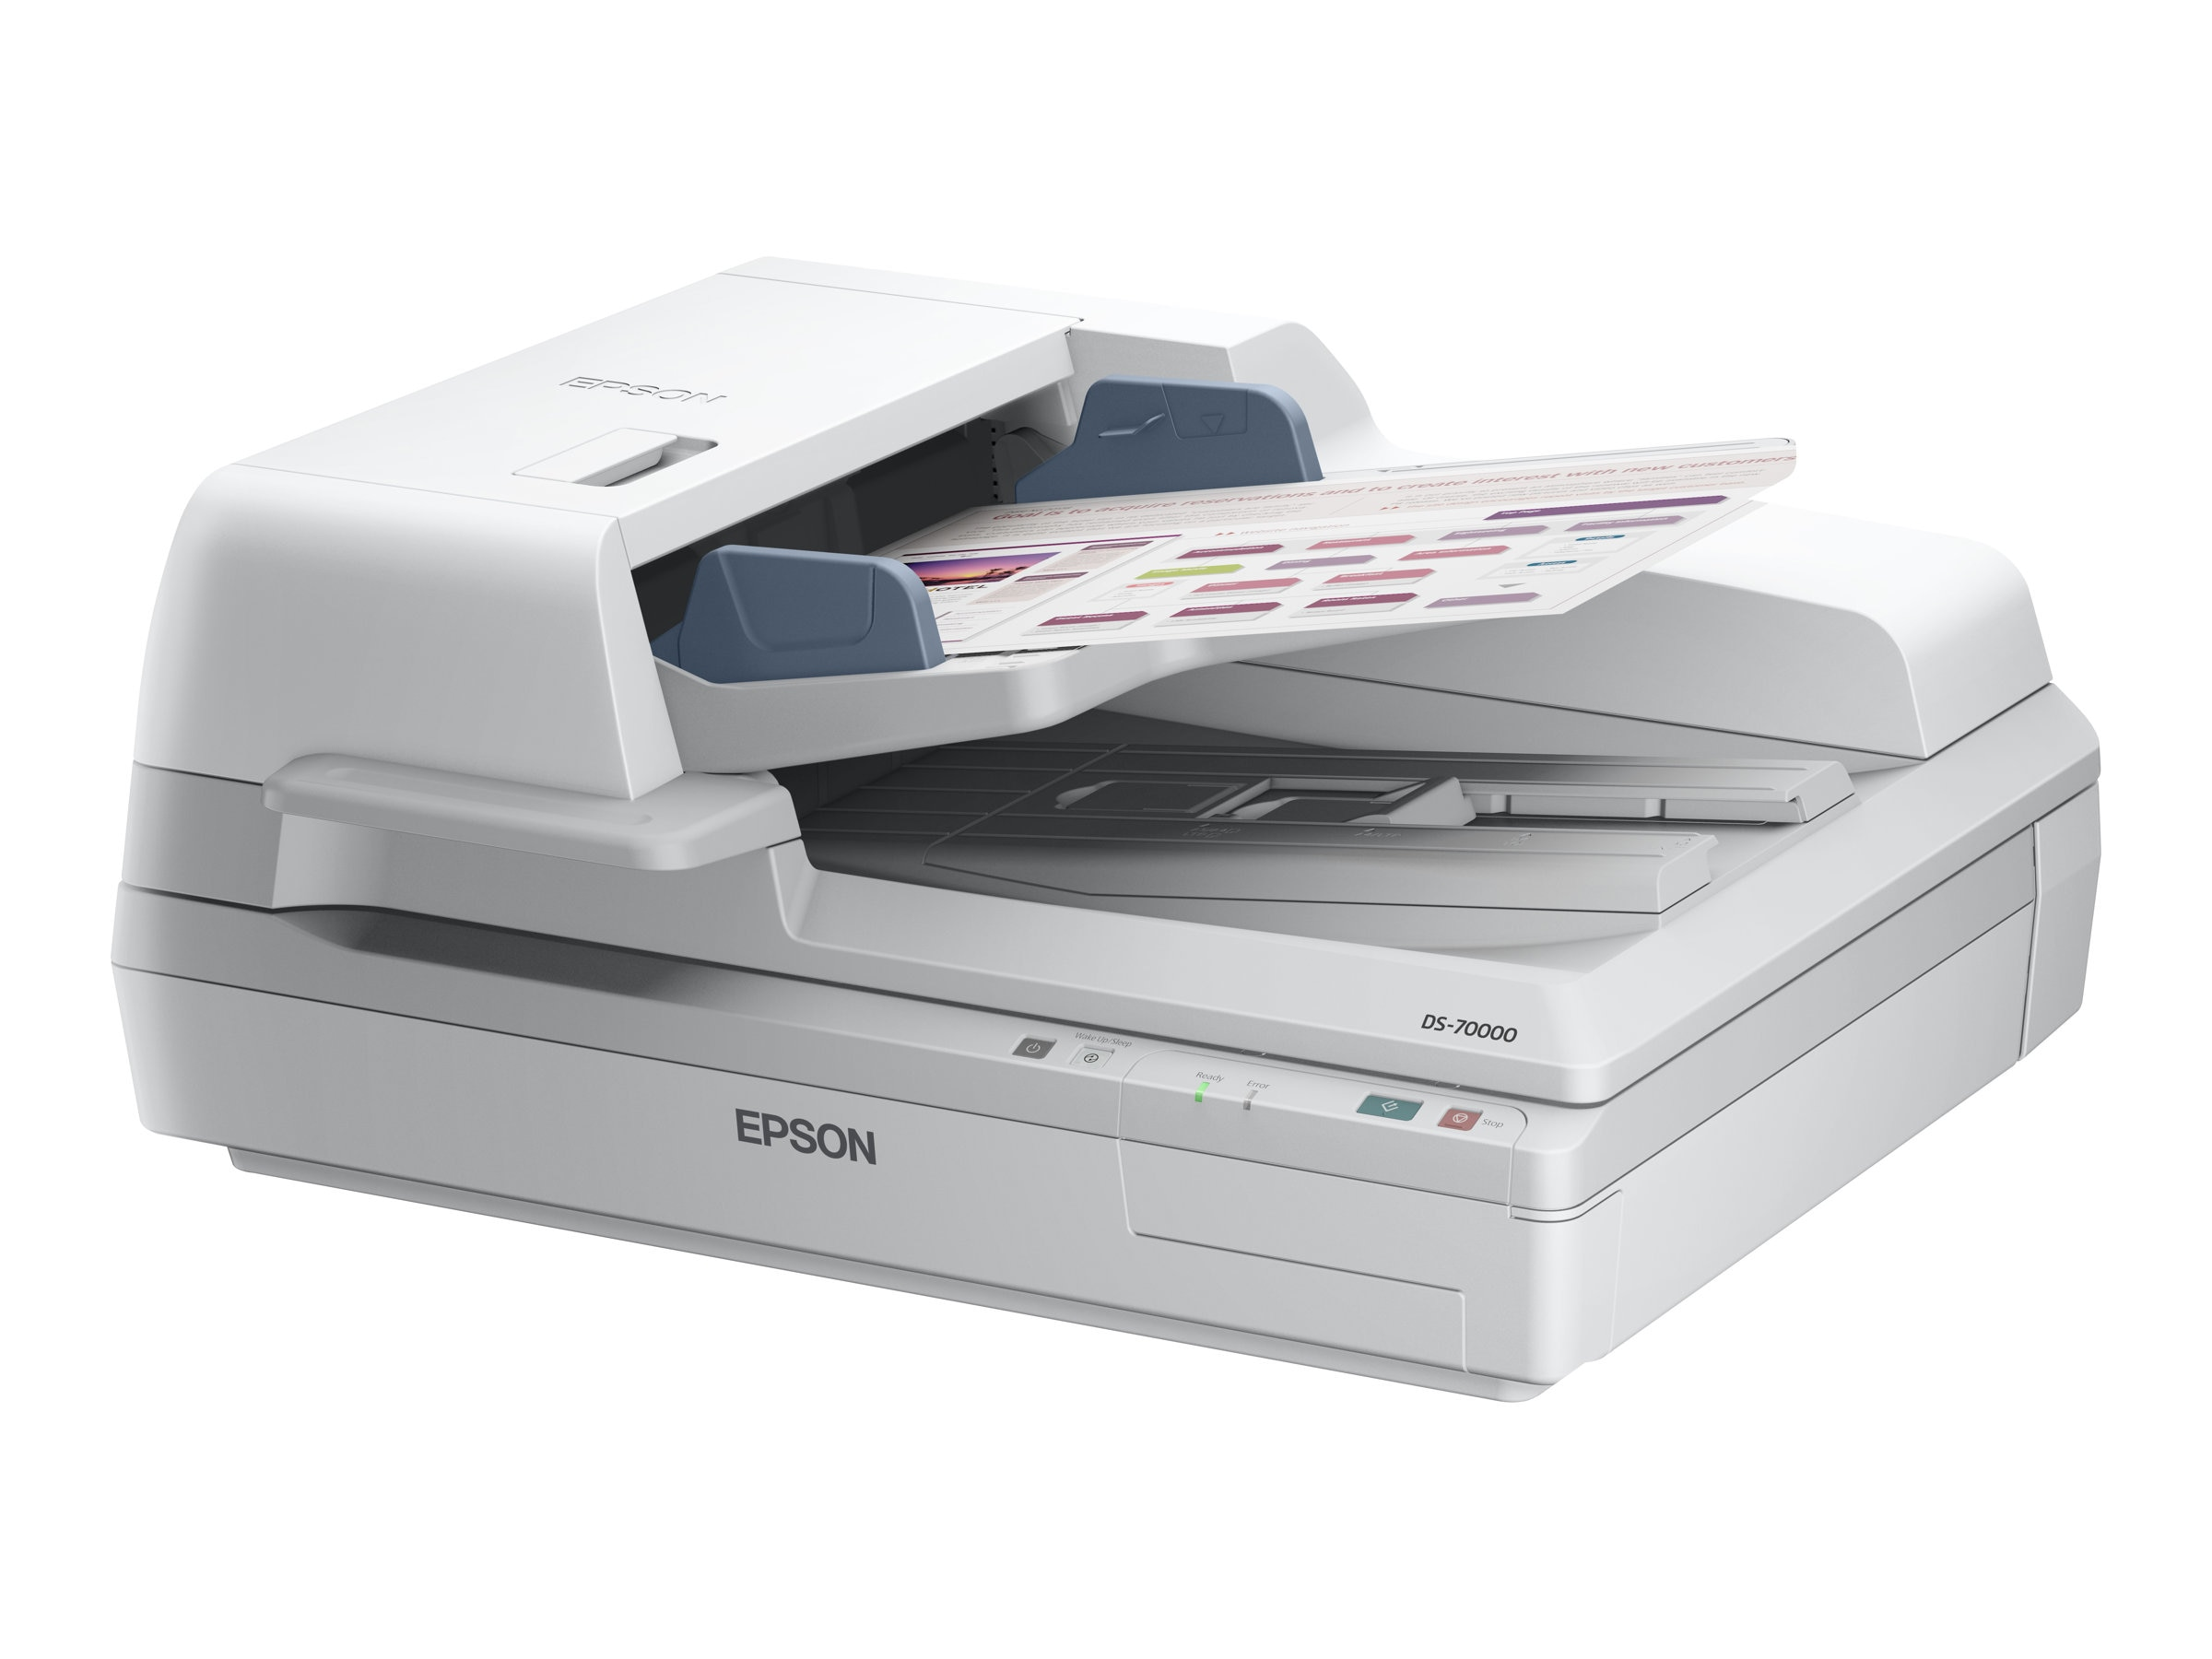 Epson WorkForce DS-70000 Scanner - $3999 less instant rebate of $100.00, B11B204321, 14777540, Scanners